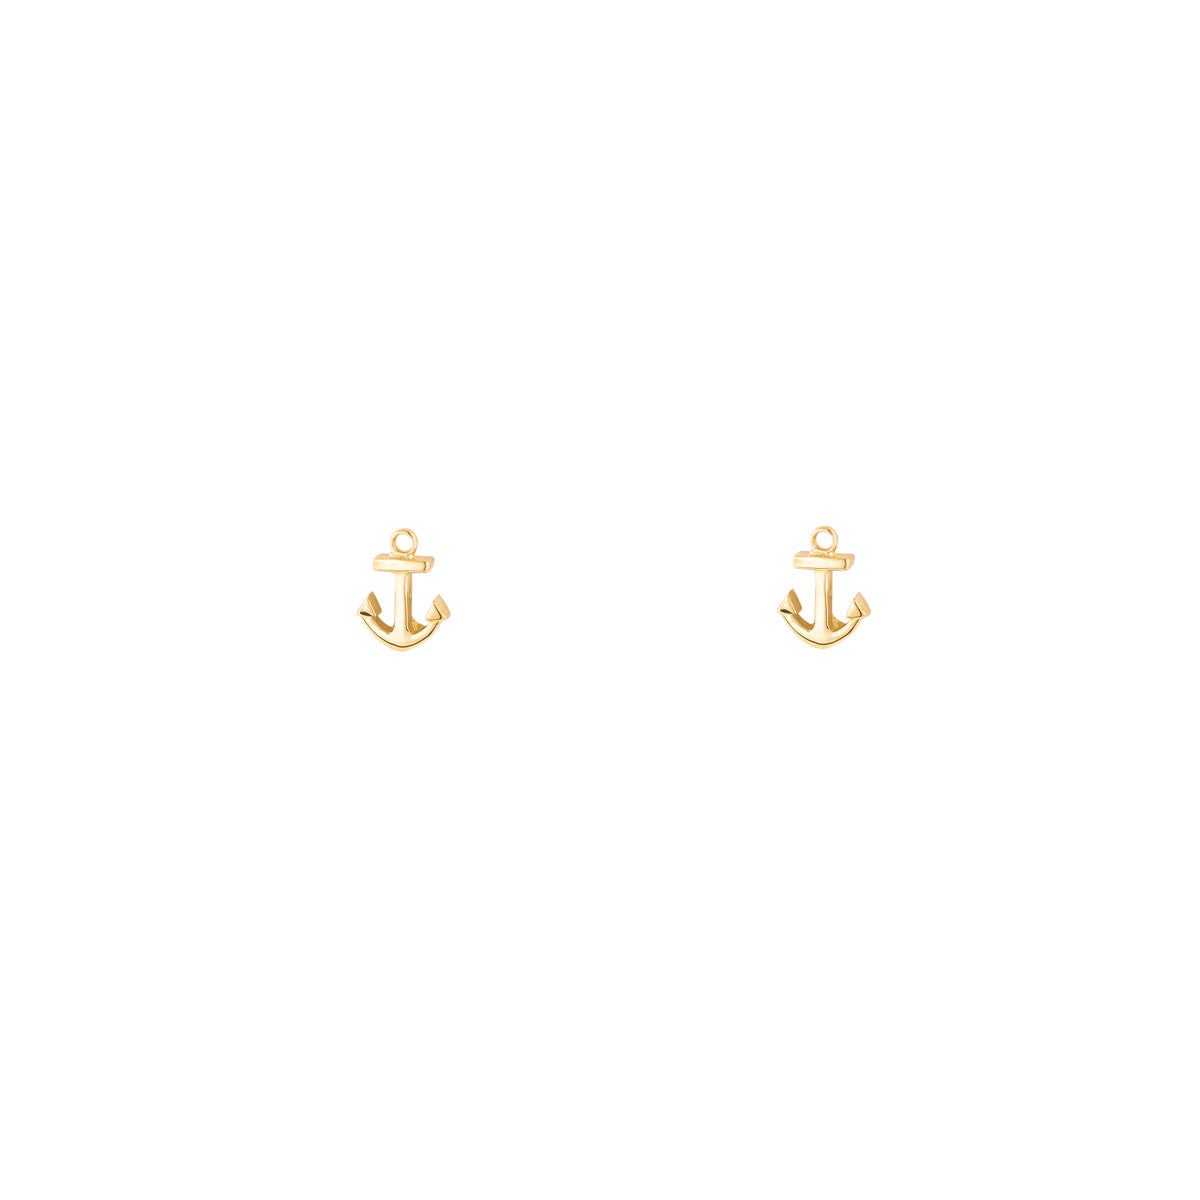 Tiny Gold Anchor Studs Earrings